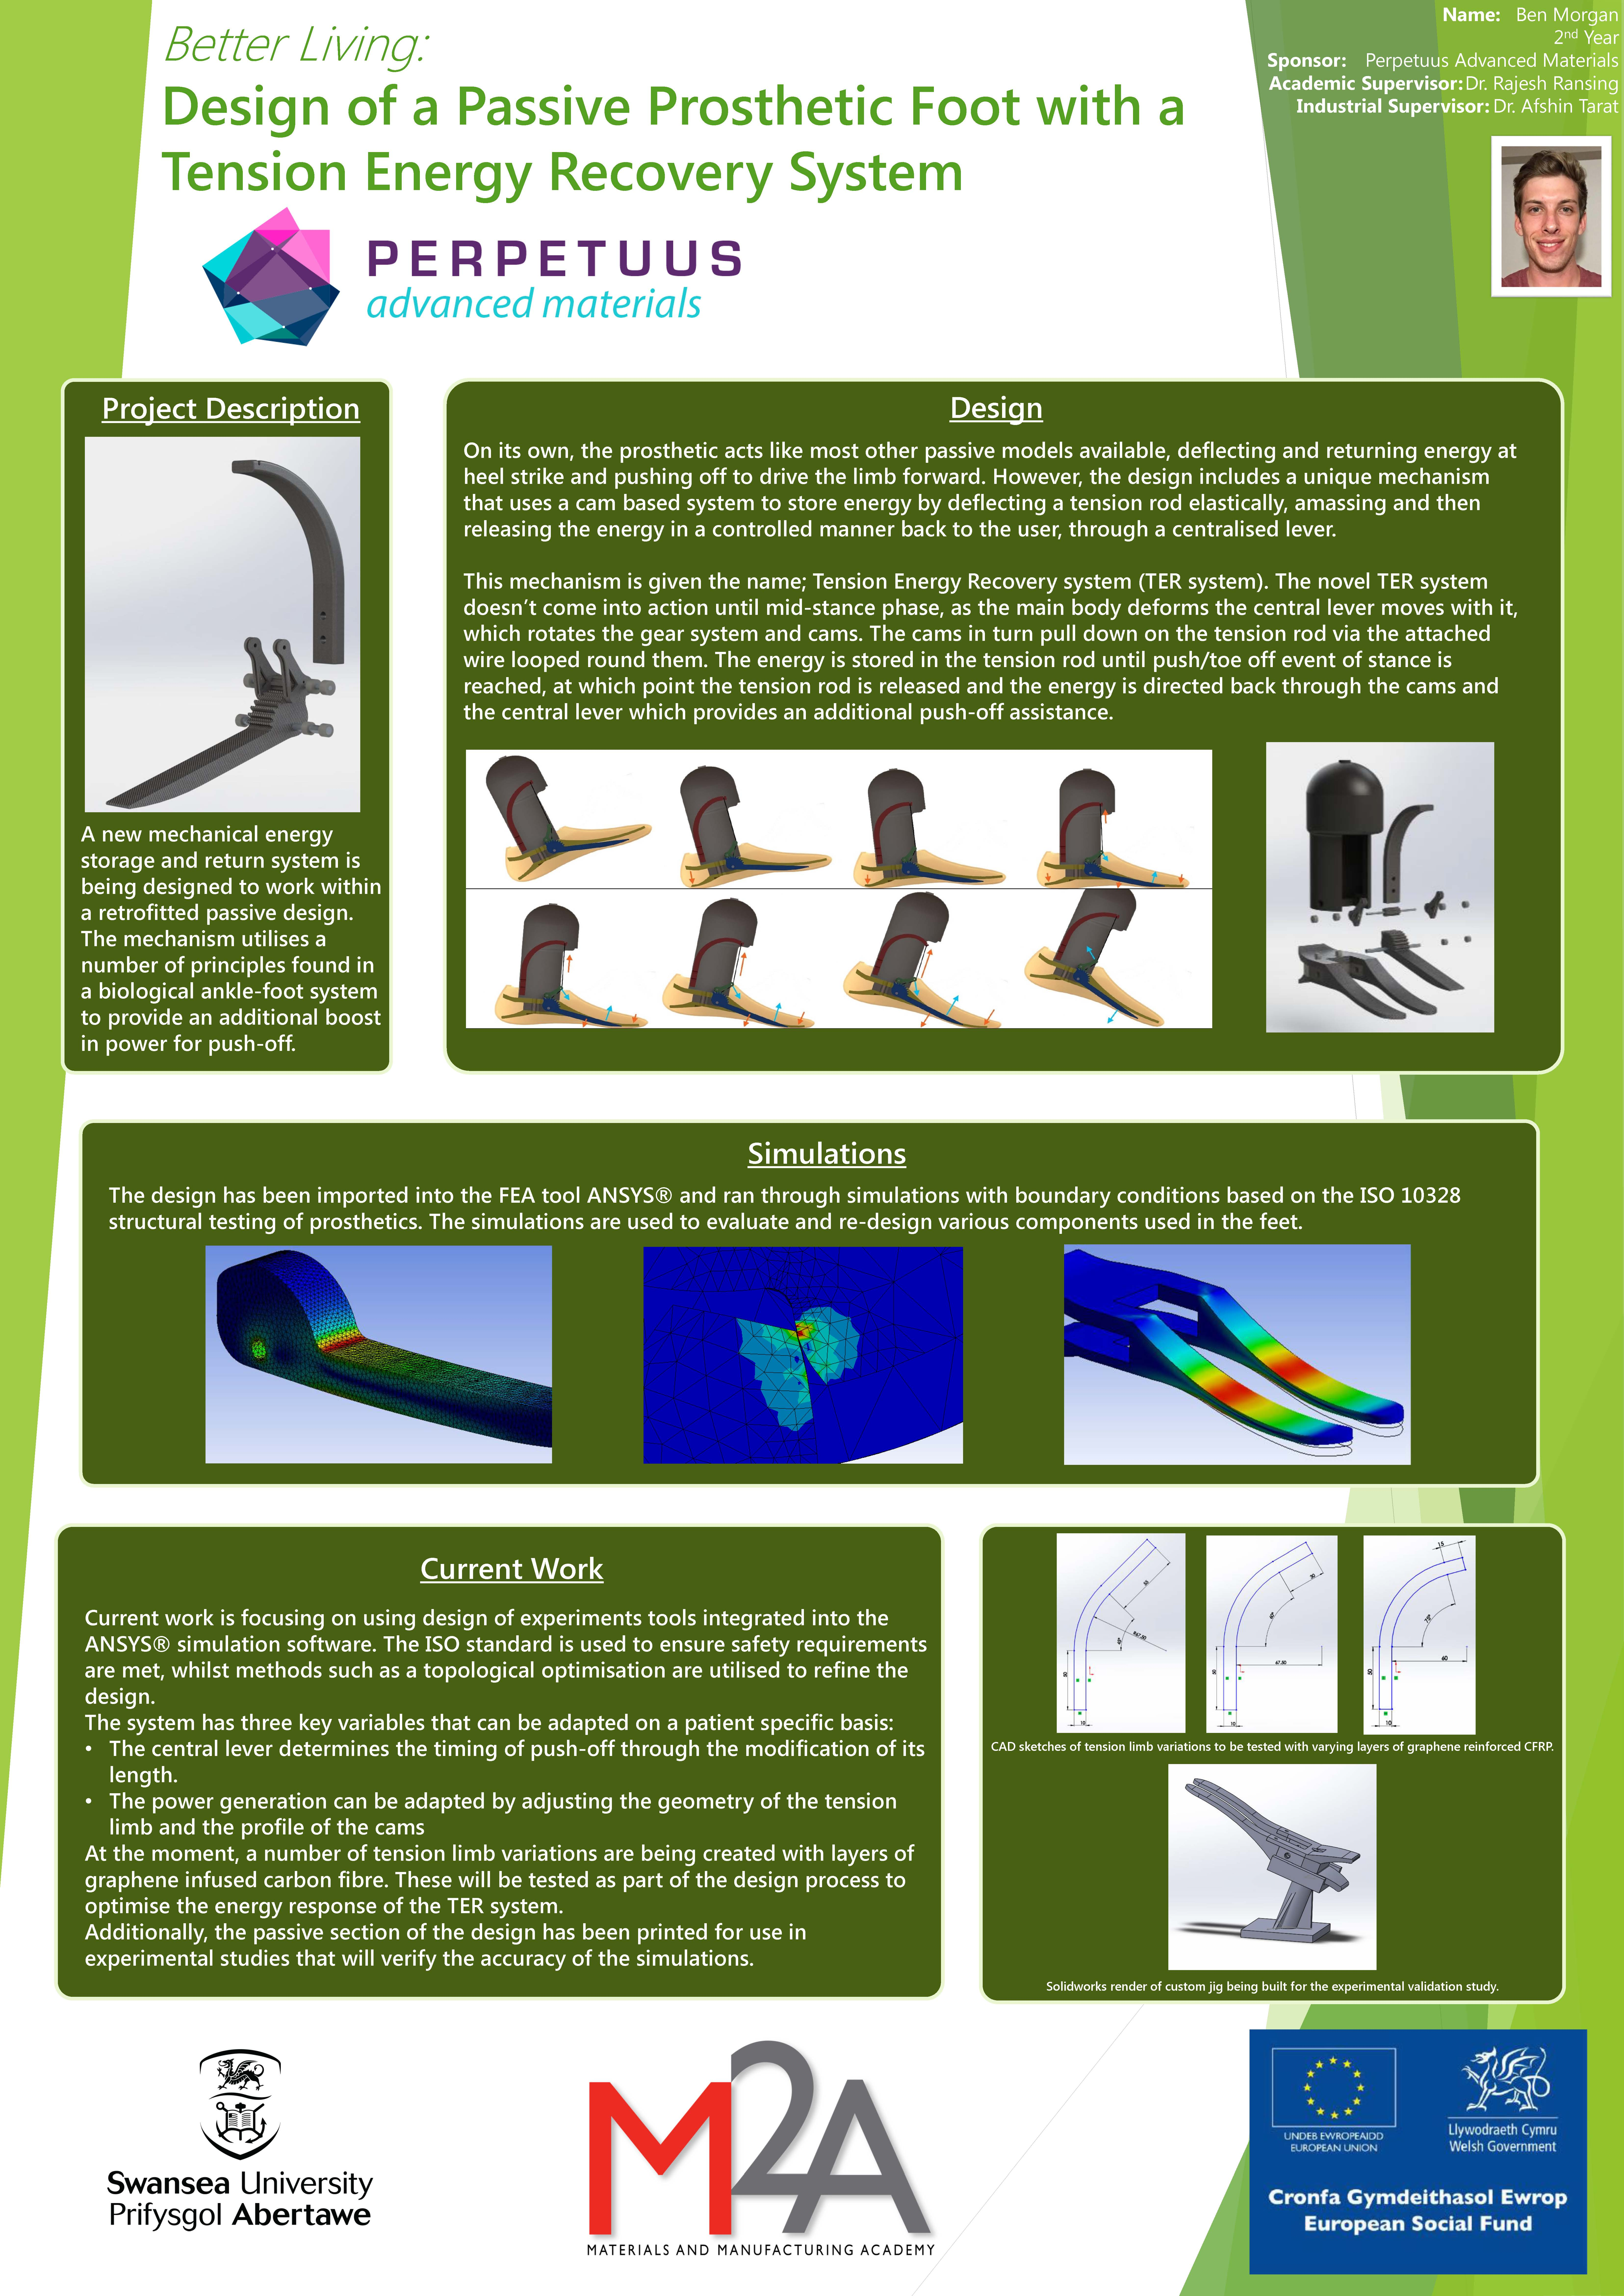 Design of a Passive Prosthetic Foot with a Tension Energy Recovery System